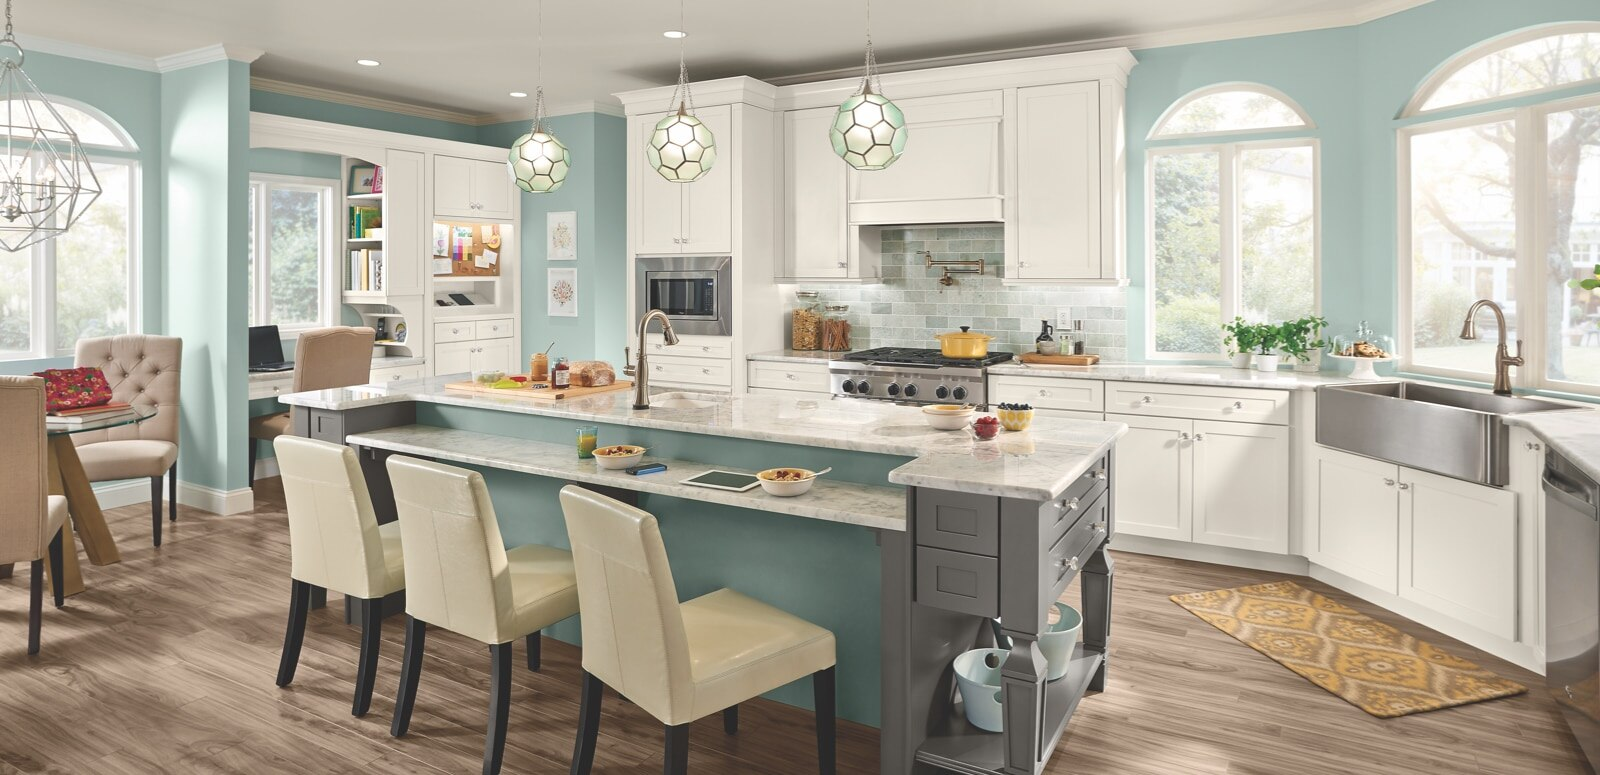 KraftMaid: Beautiful cabinets for kitchen & bathroom designs.